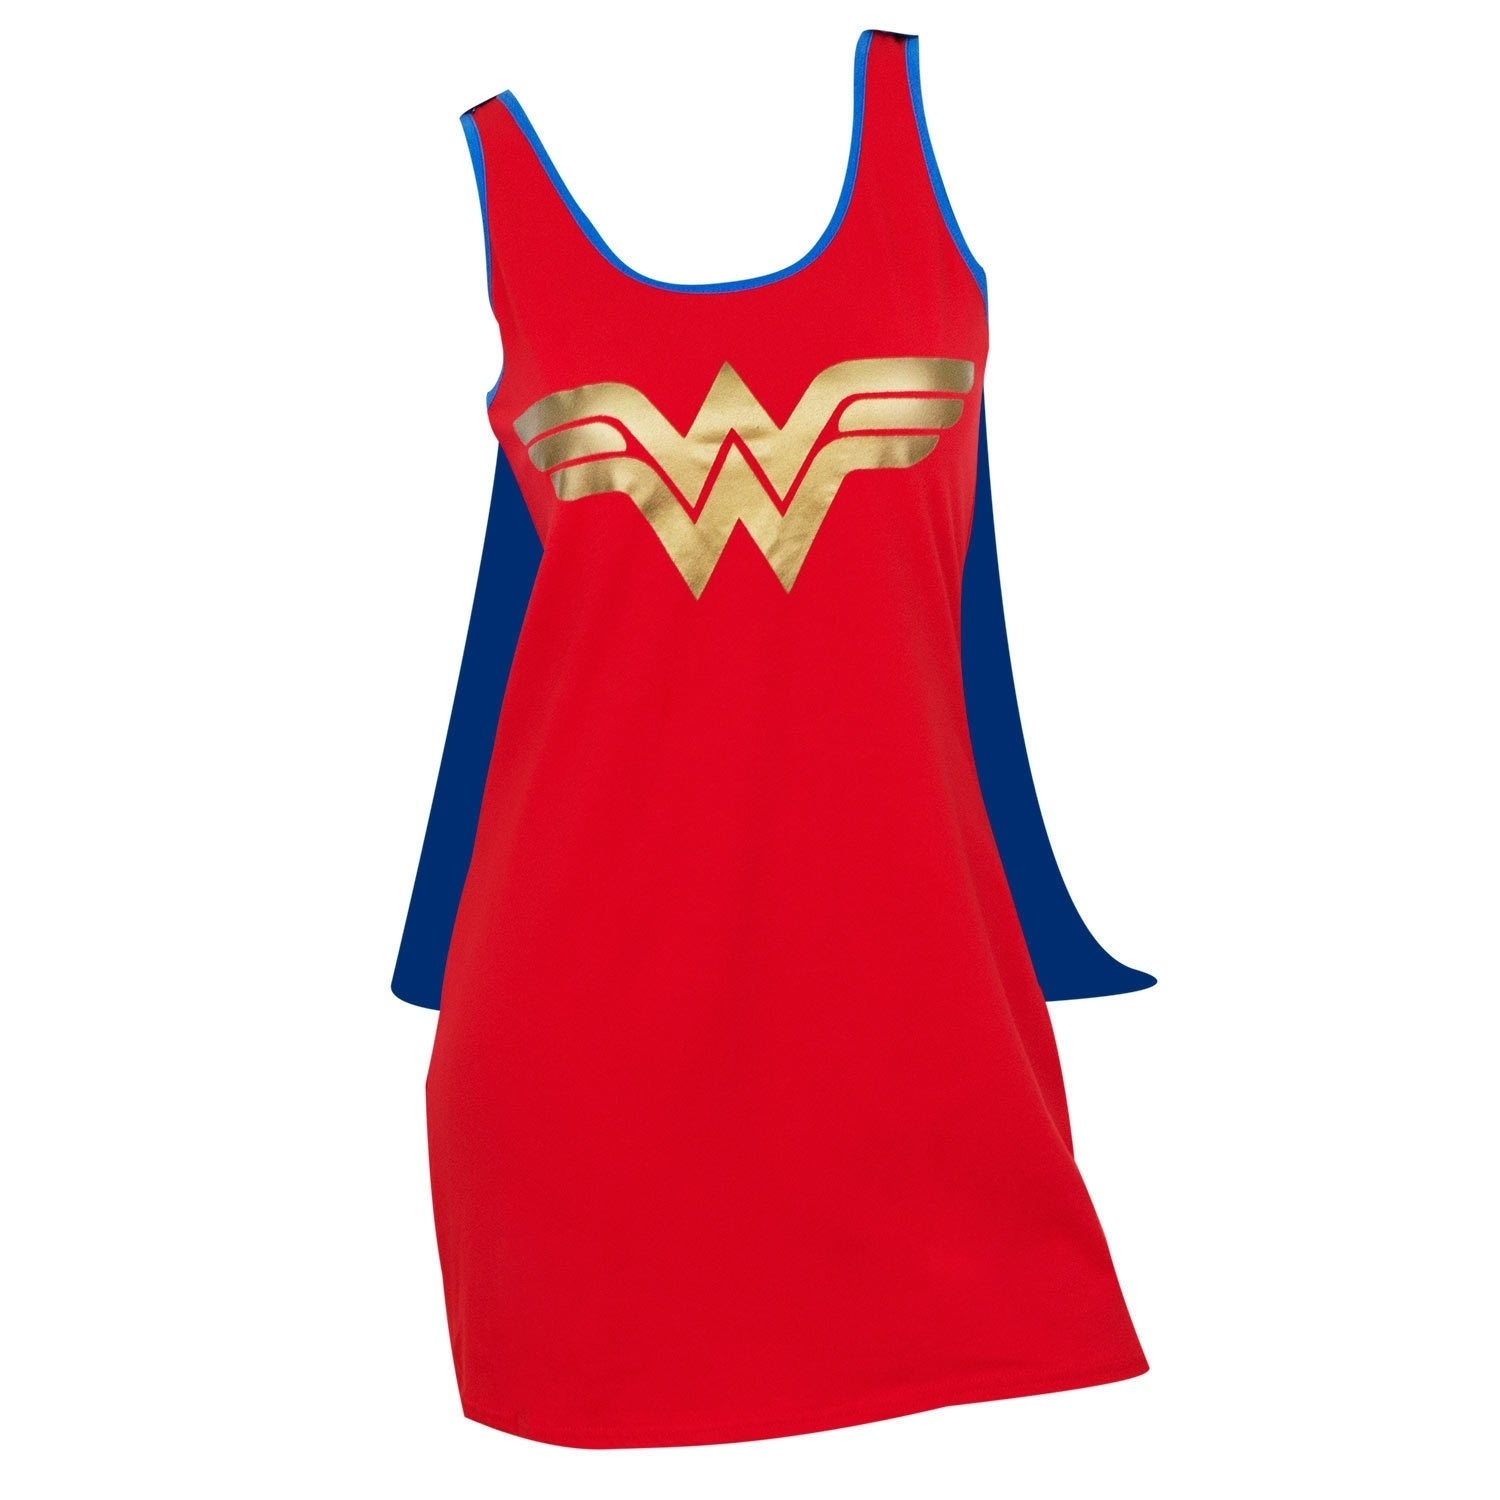 Rubie's Wonder Woman Cape Red/Blue/Gold Cotton-Blended Co...